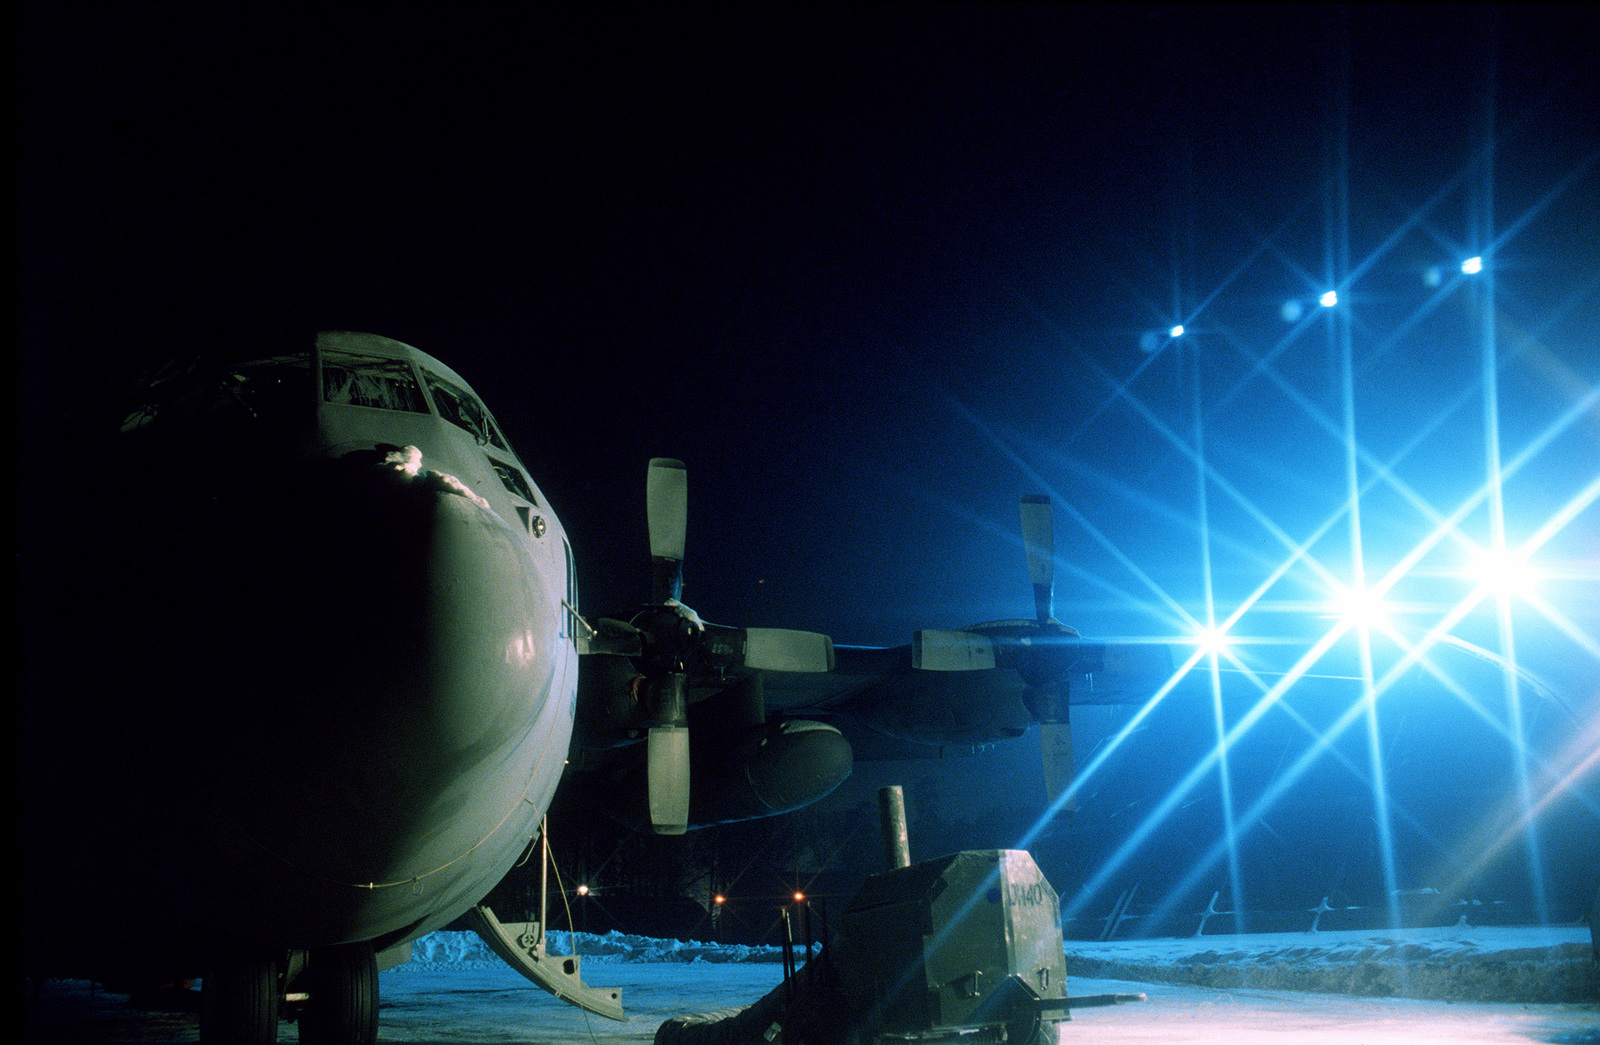 A 40th Airlift Squadron (AS) C-130H sits on the snow covered flight line ramp. The 40th AS is assigned to the 7th Wing, Dyess Air Force Base, Texas and is deployed to Ramstein to support Operations Joint Endeavor and Joint Guard from 4 Dec. 1996 to 23 Jan. 1997